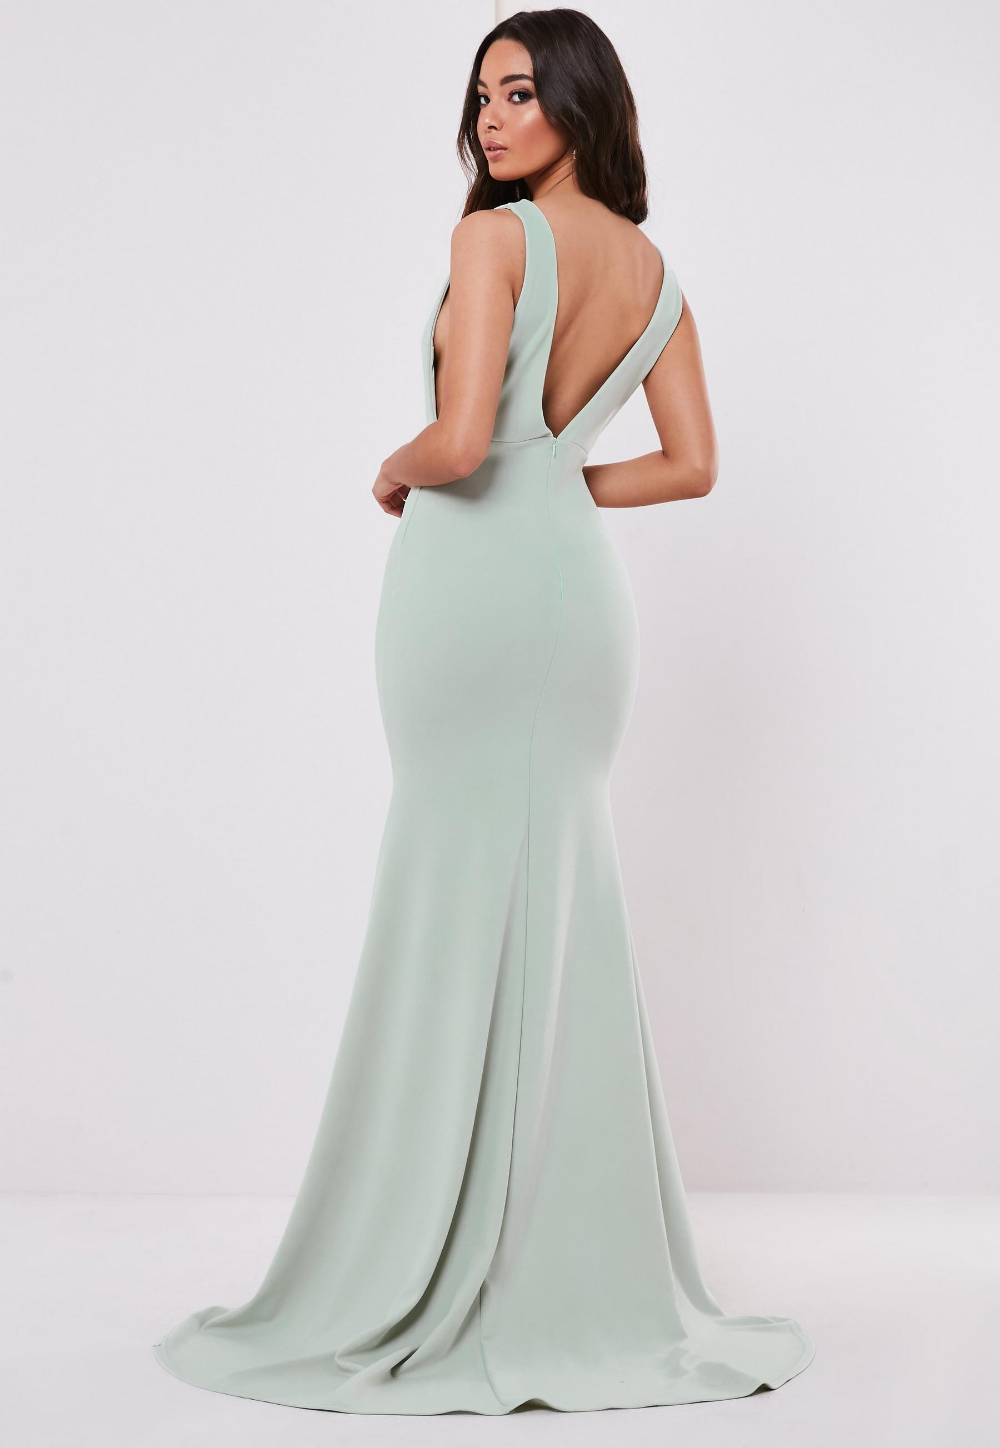 Bridesmaid Green Sleeveless Low Back Maxi Dress Missguided Red Prom Dresses Uk Prom Dresses Uk Red Prom Dress